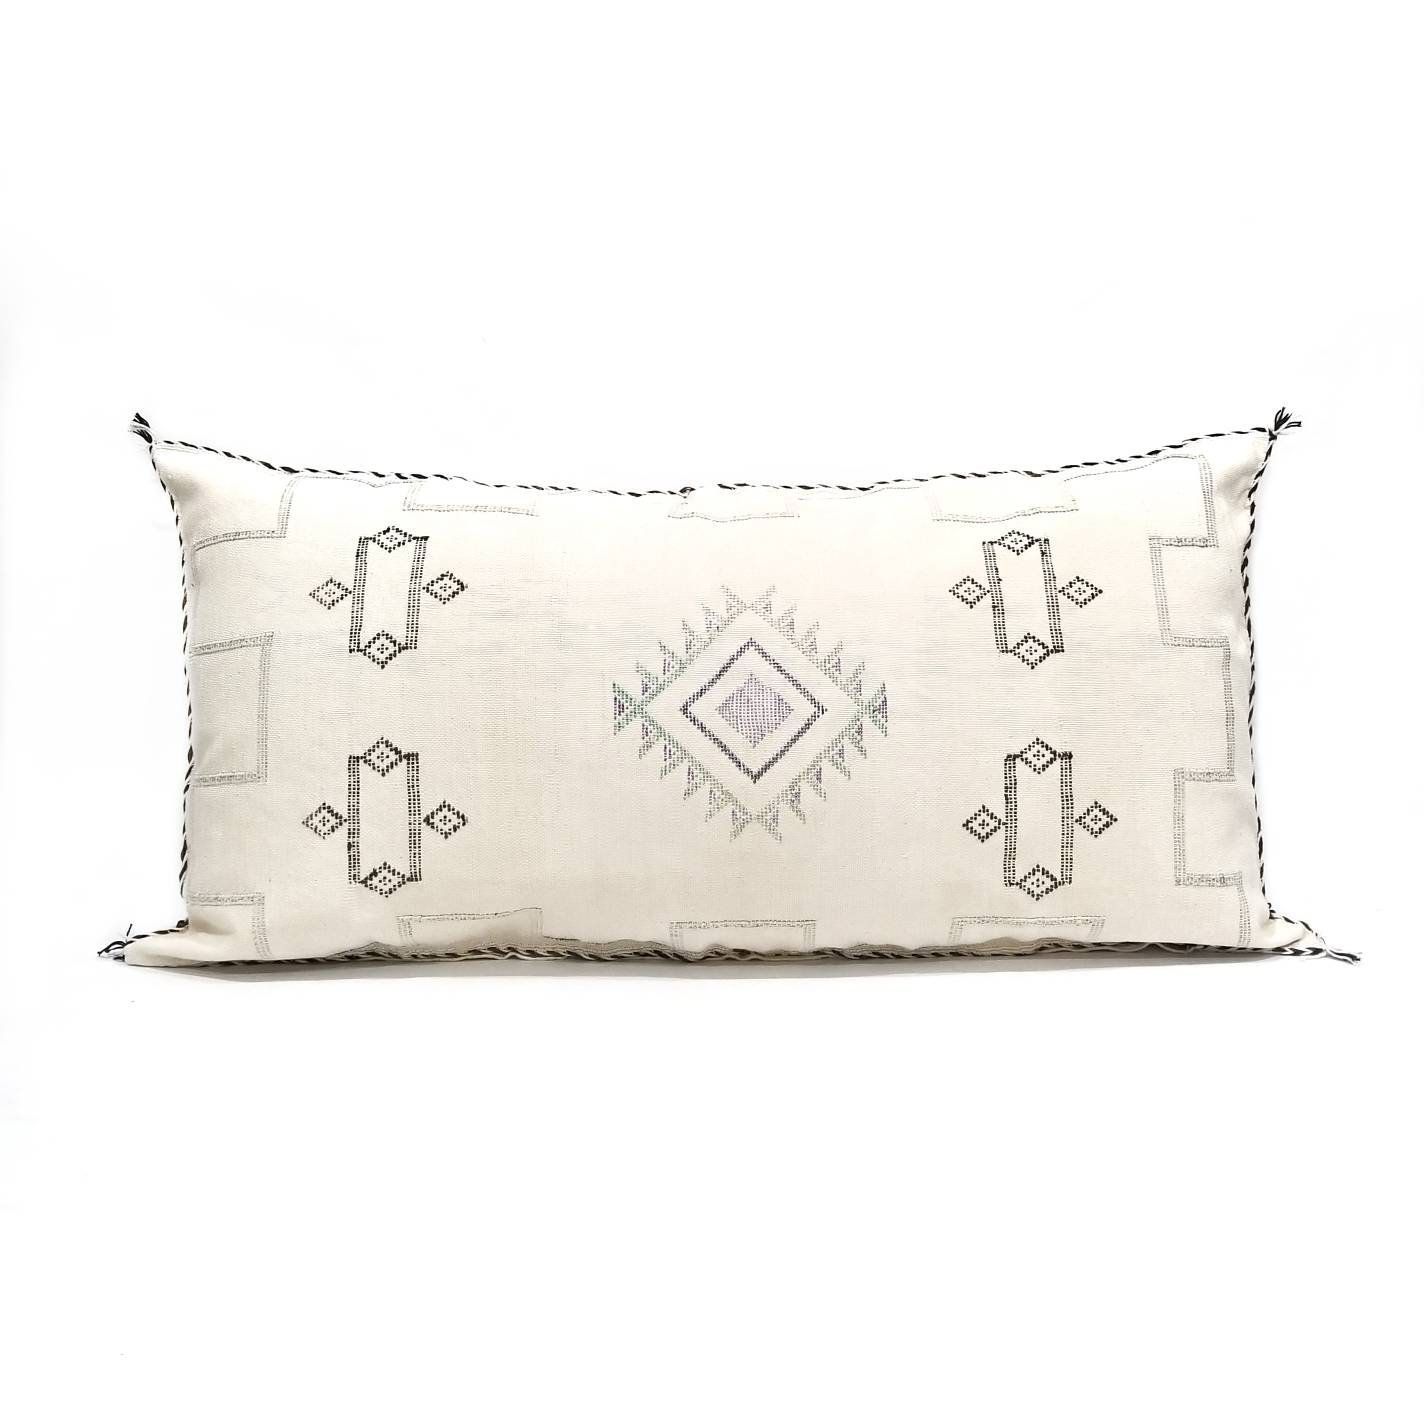 19x 38 Giant King Size Moroccan Cactus Silk Sabra Pillow Cover With Zipper Closure Ed